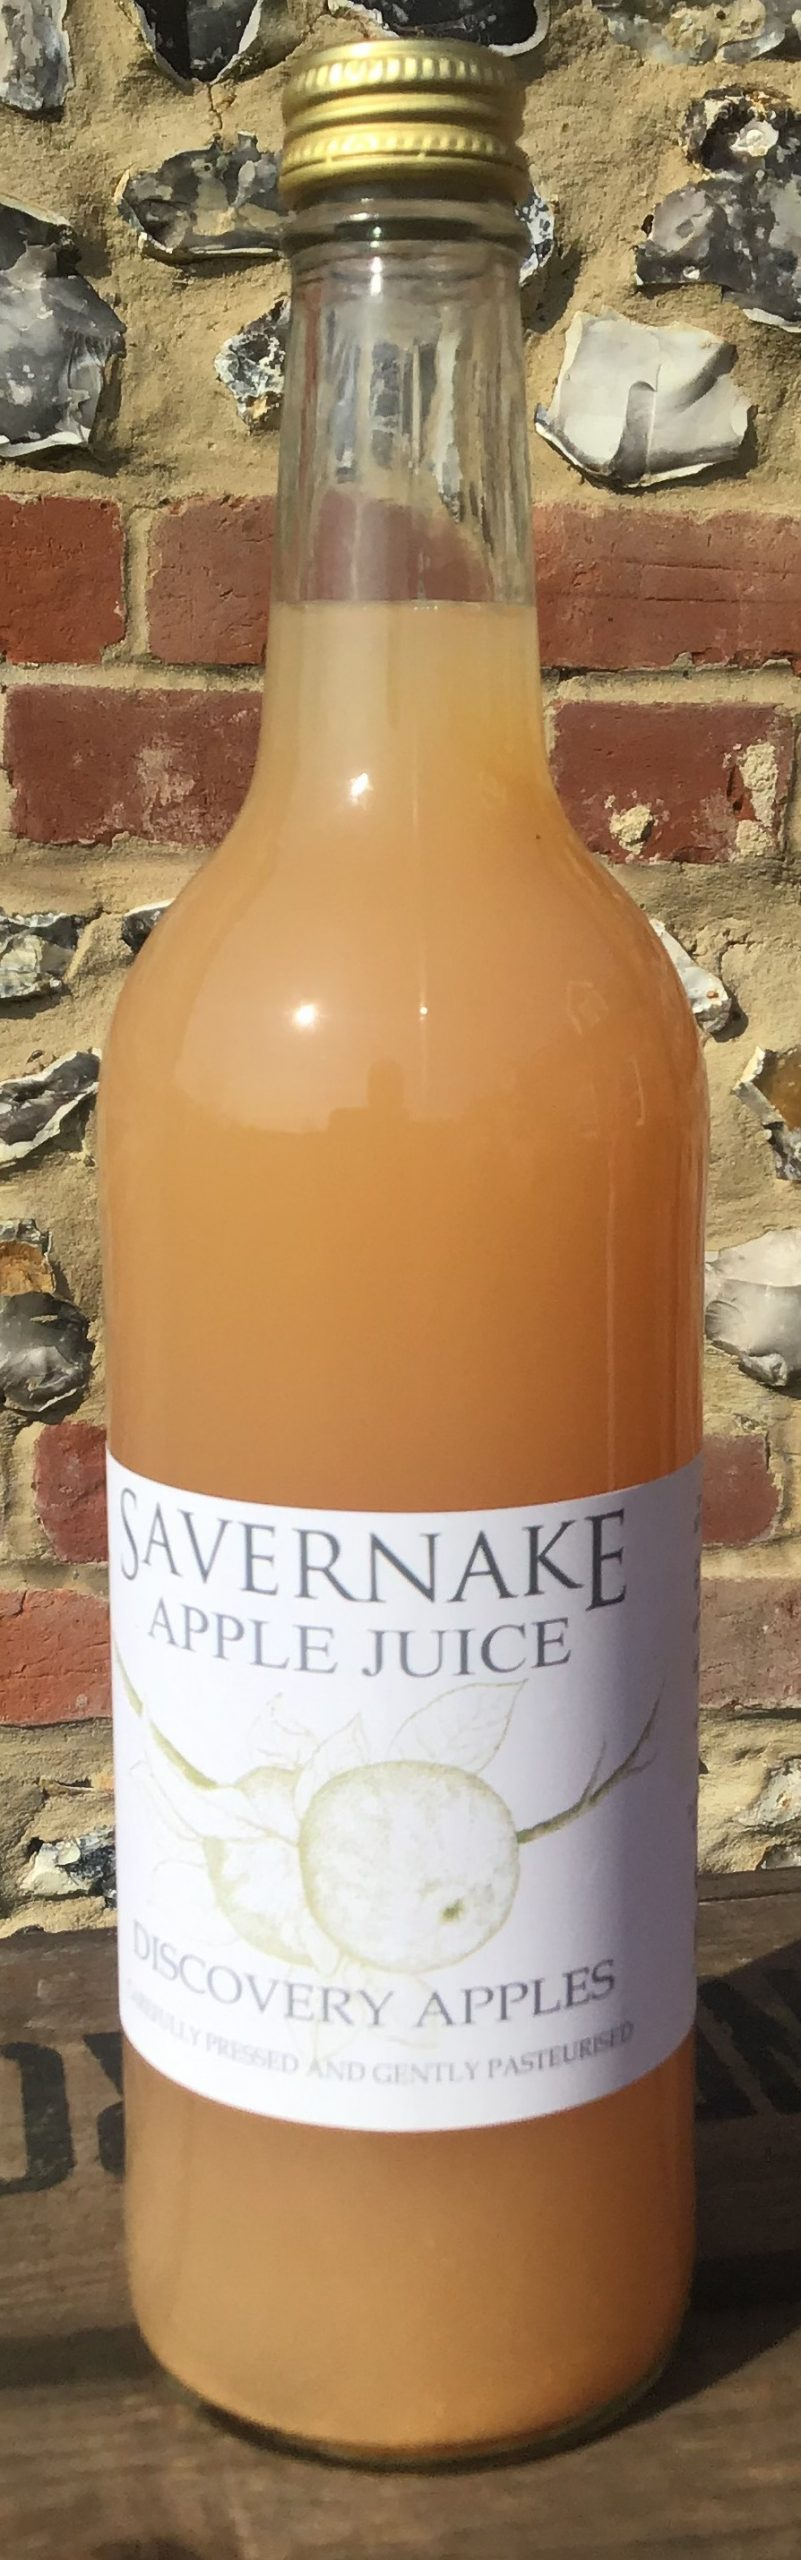 750ml Discovery Apple Juice, the rural supply drive through supermarket